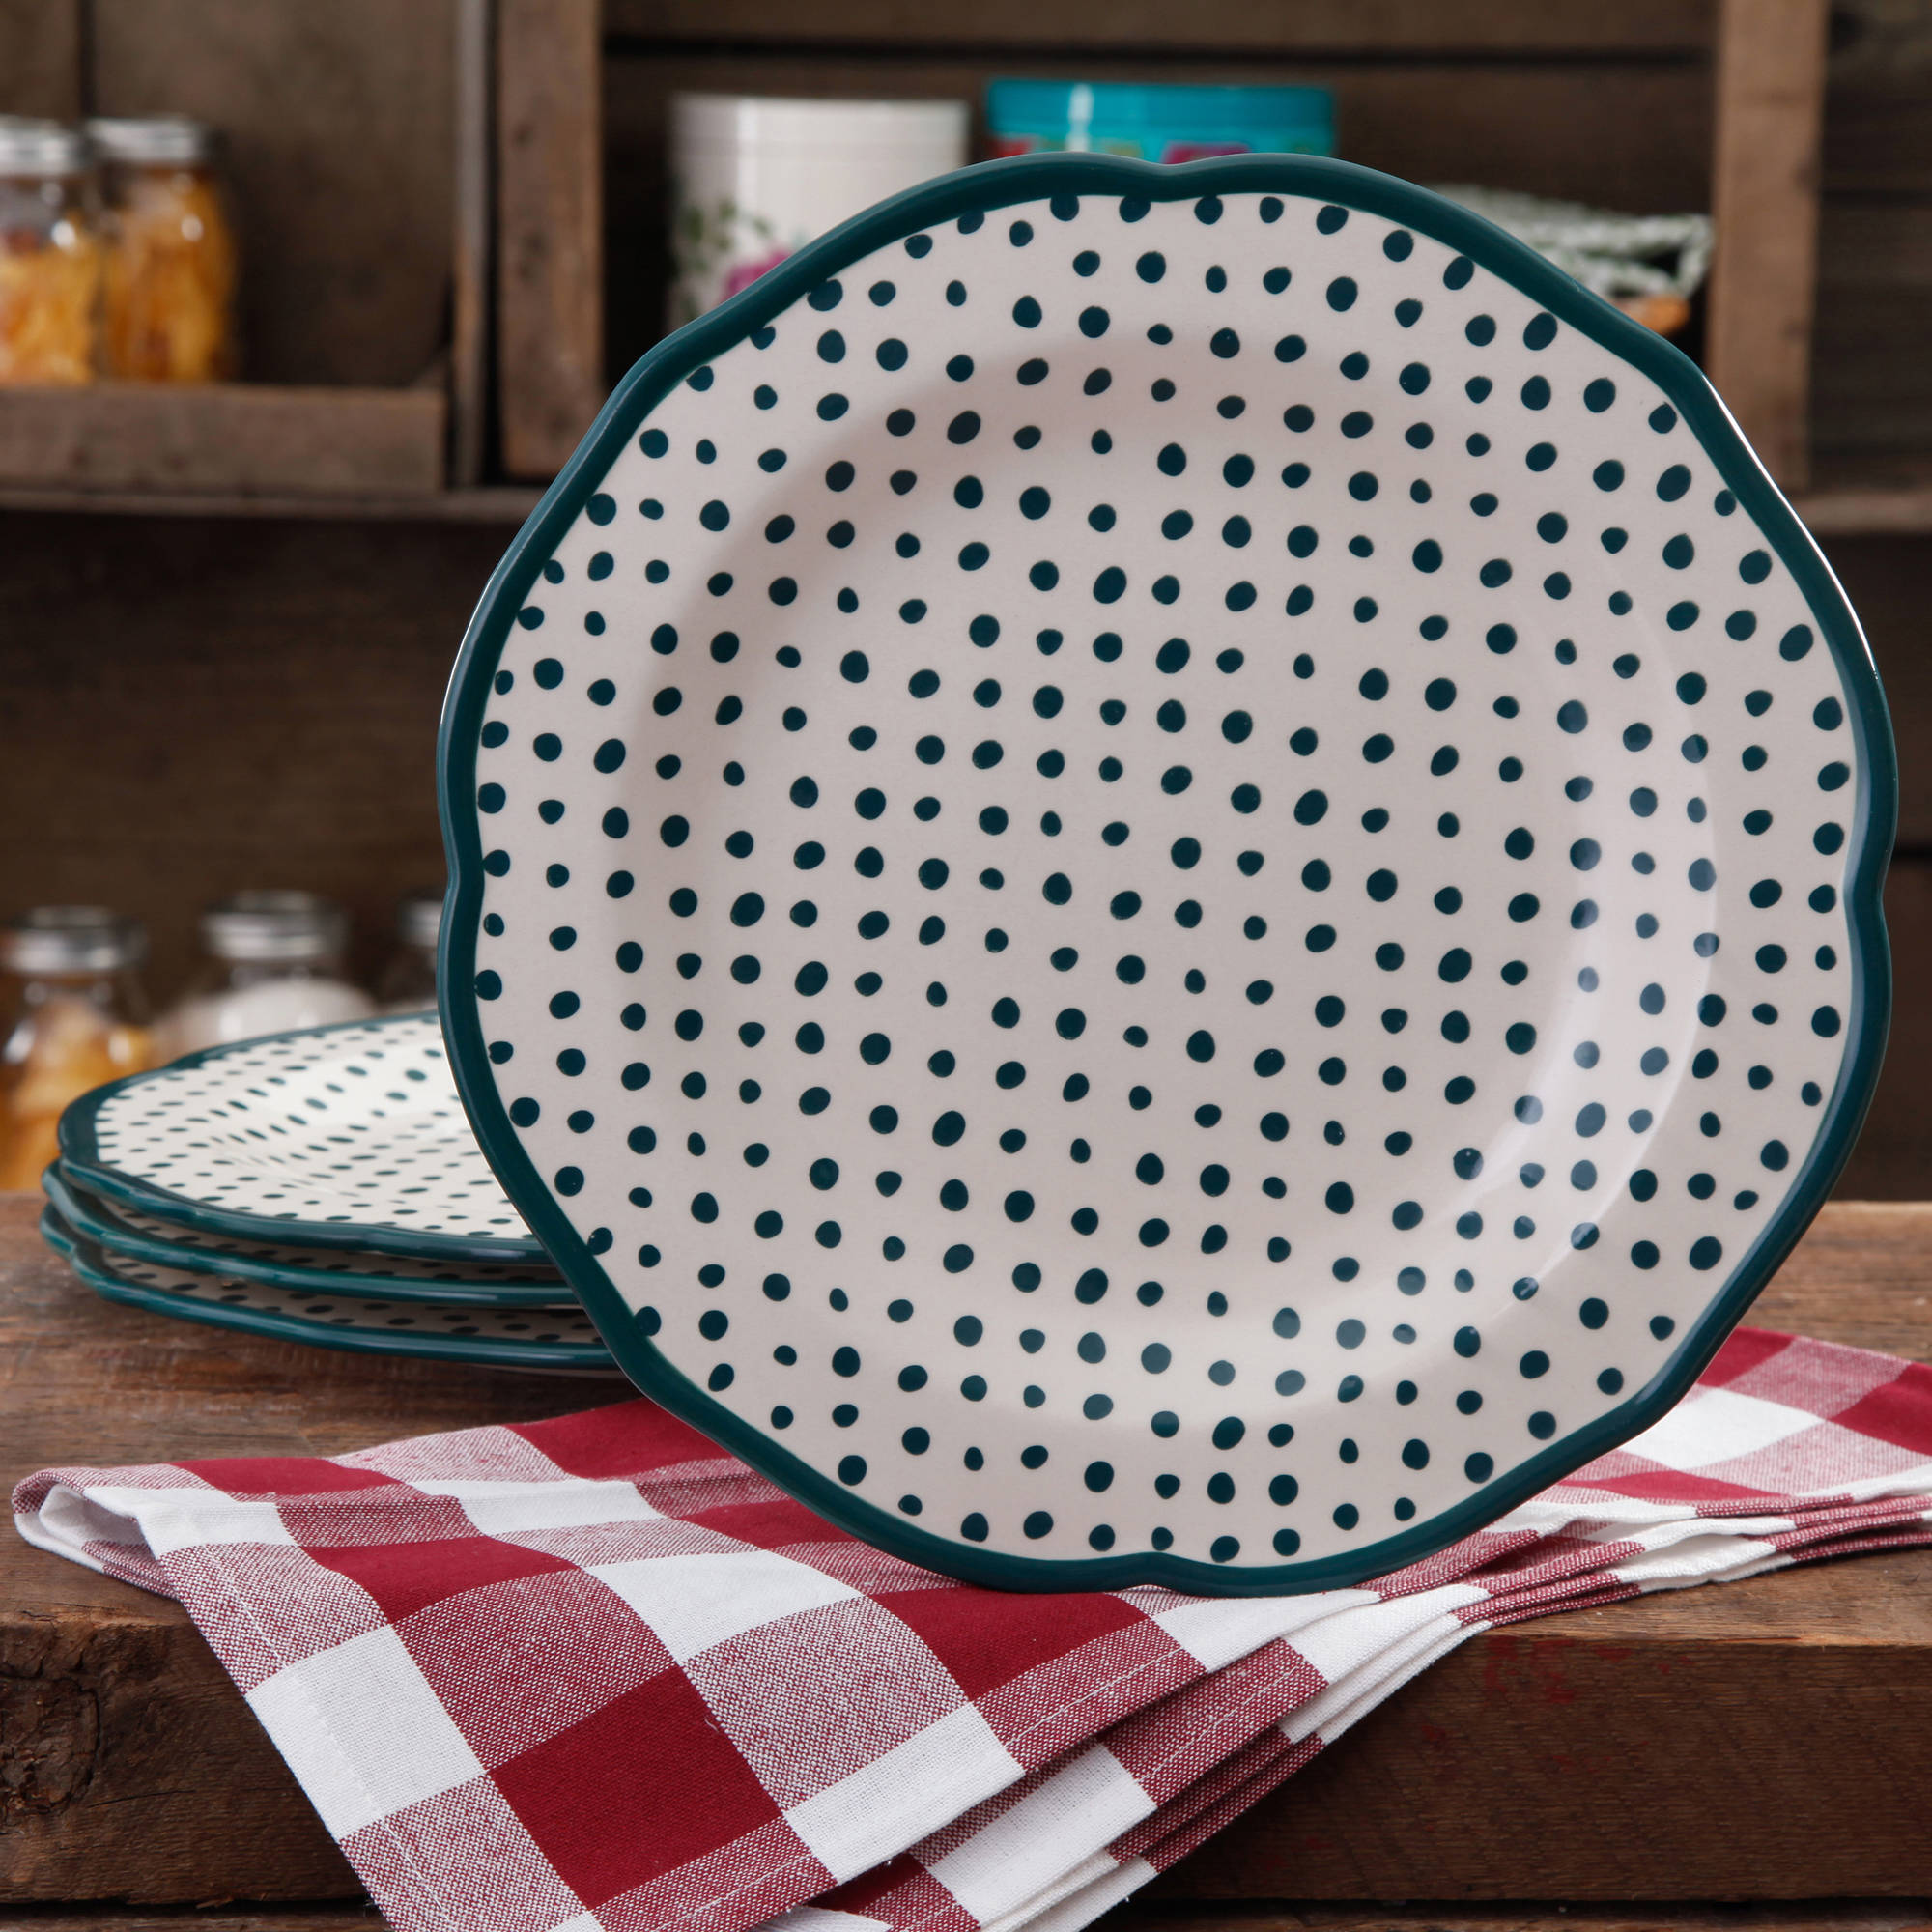 The Pioneer Woman Retro Dots Dinner Plate Set, 4-Pack